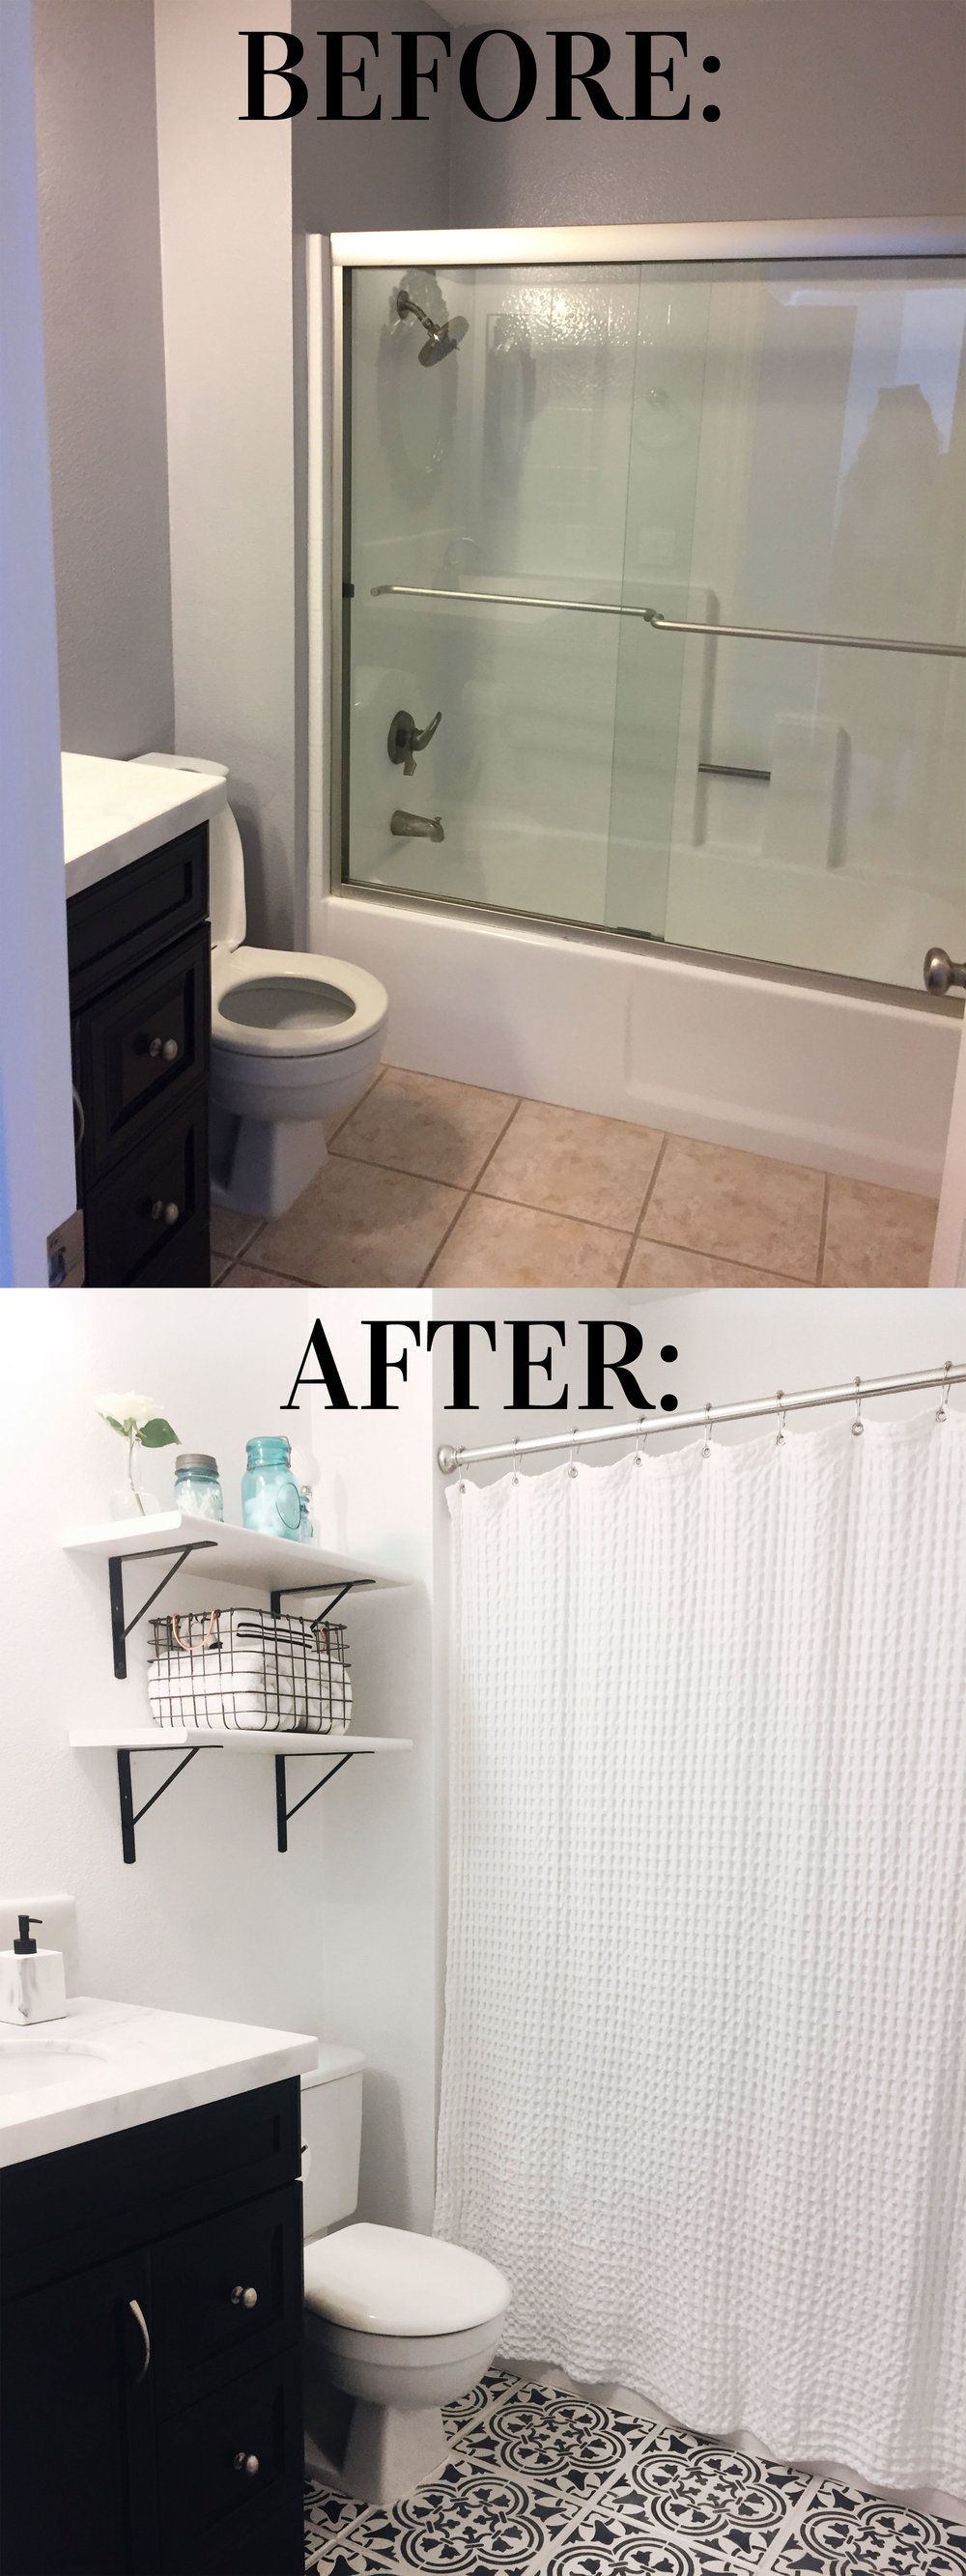 DIY FOR LESS: MOROCCAN INSPIRED PAINTED TILE | Tile flooring ...